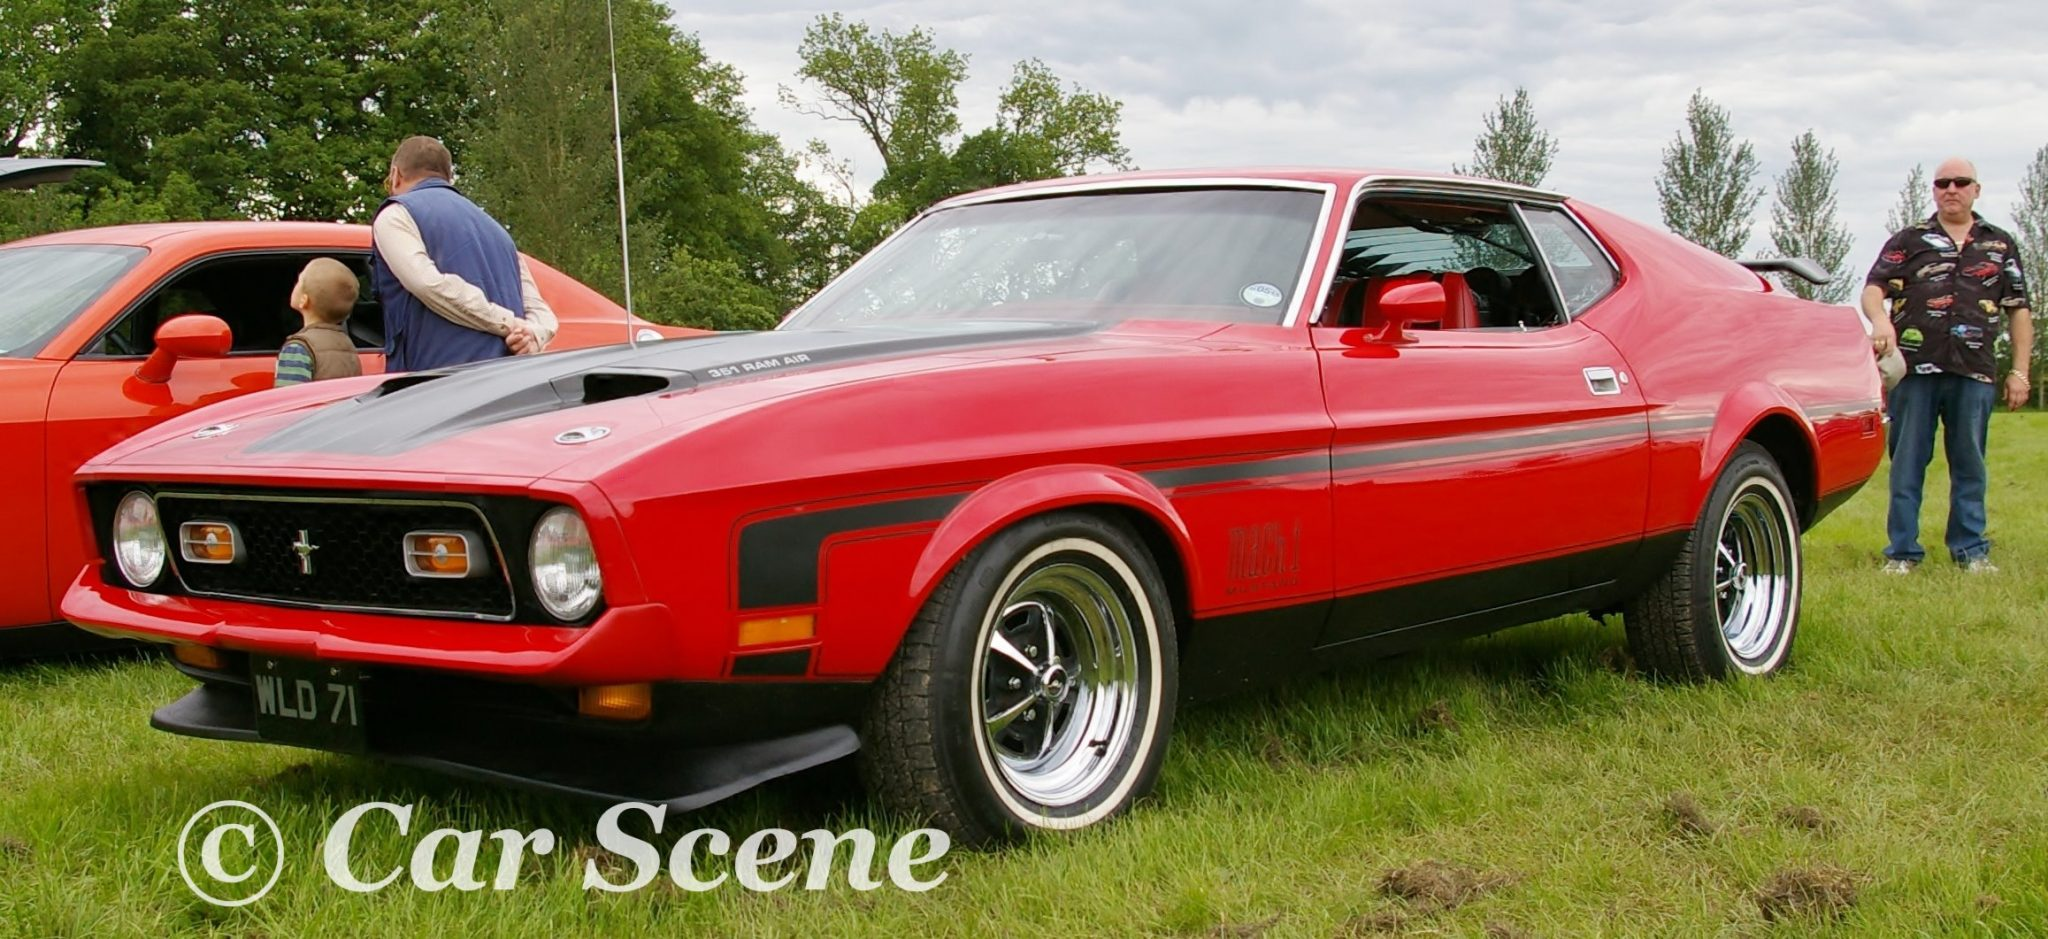 1971 Ford Mustang Mach 1 front side view